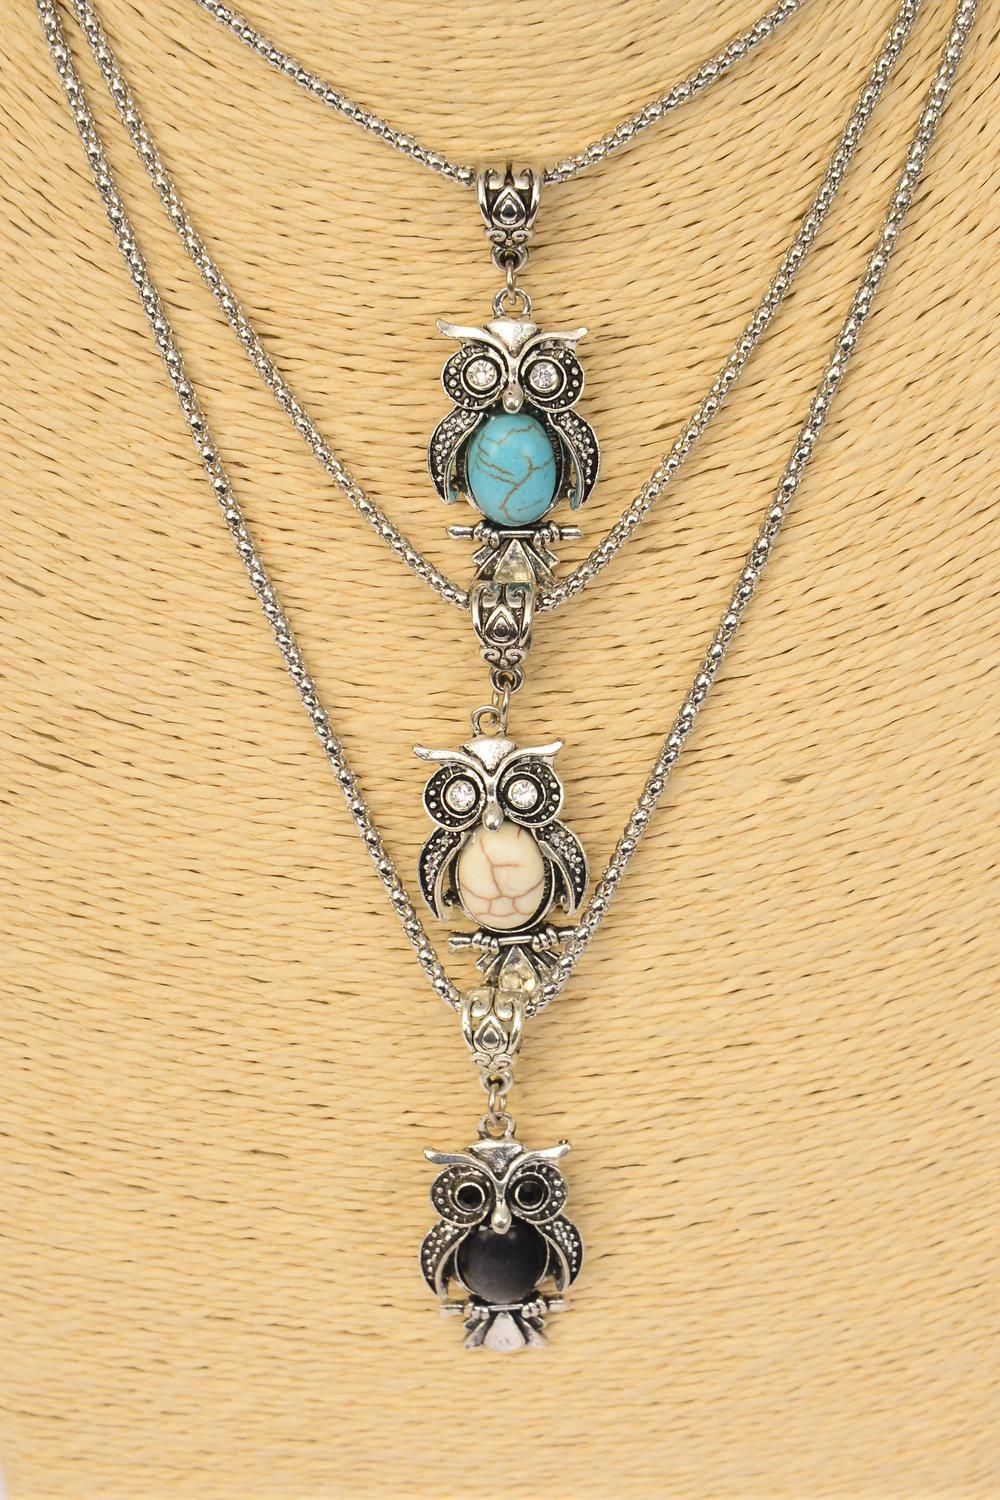 "Necklace Silver Chain Owl Semiprecious Stone/DZ match 02661 Pendant-1.5""x 0.75"" Wide,Chain-18"" Extension Chain,4 Ivory,4 Black,4 Turquoise Asst,Hang Tag & OPP Bag & UPC Code"